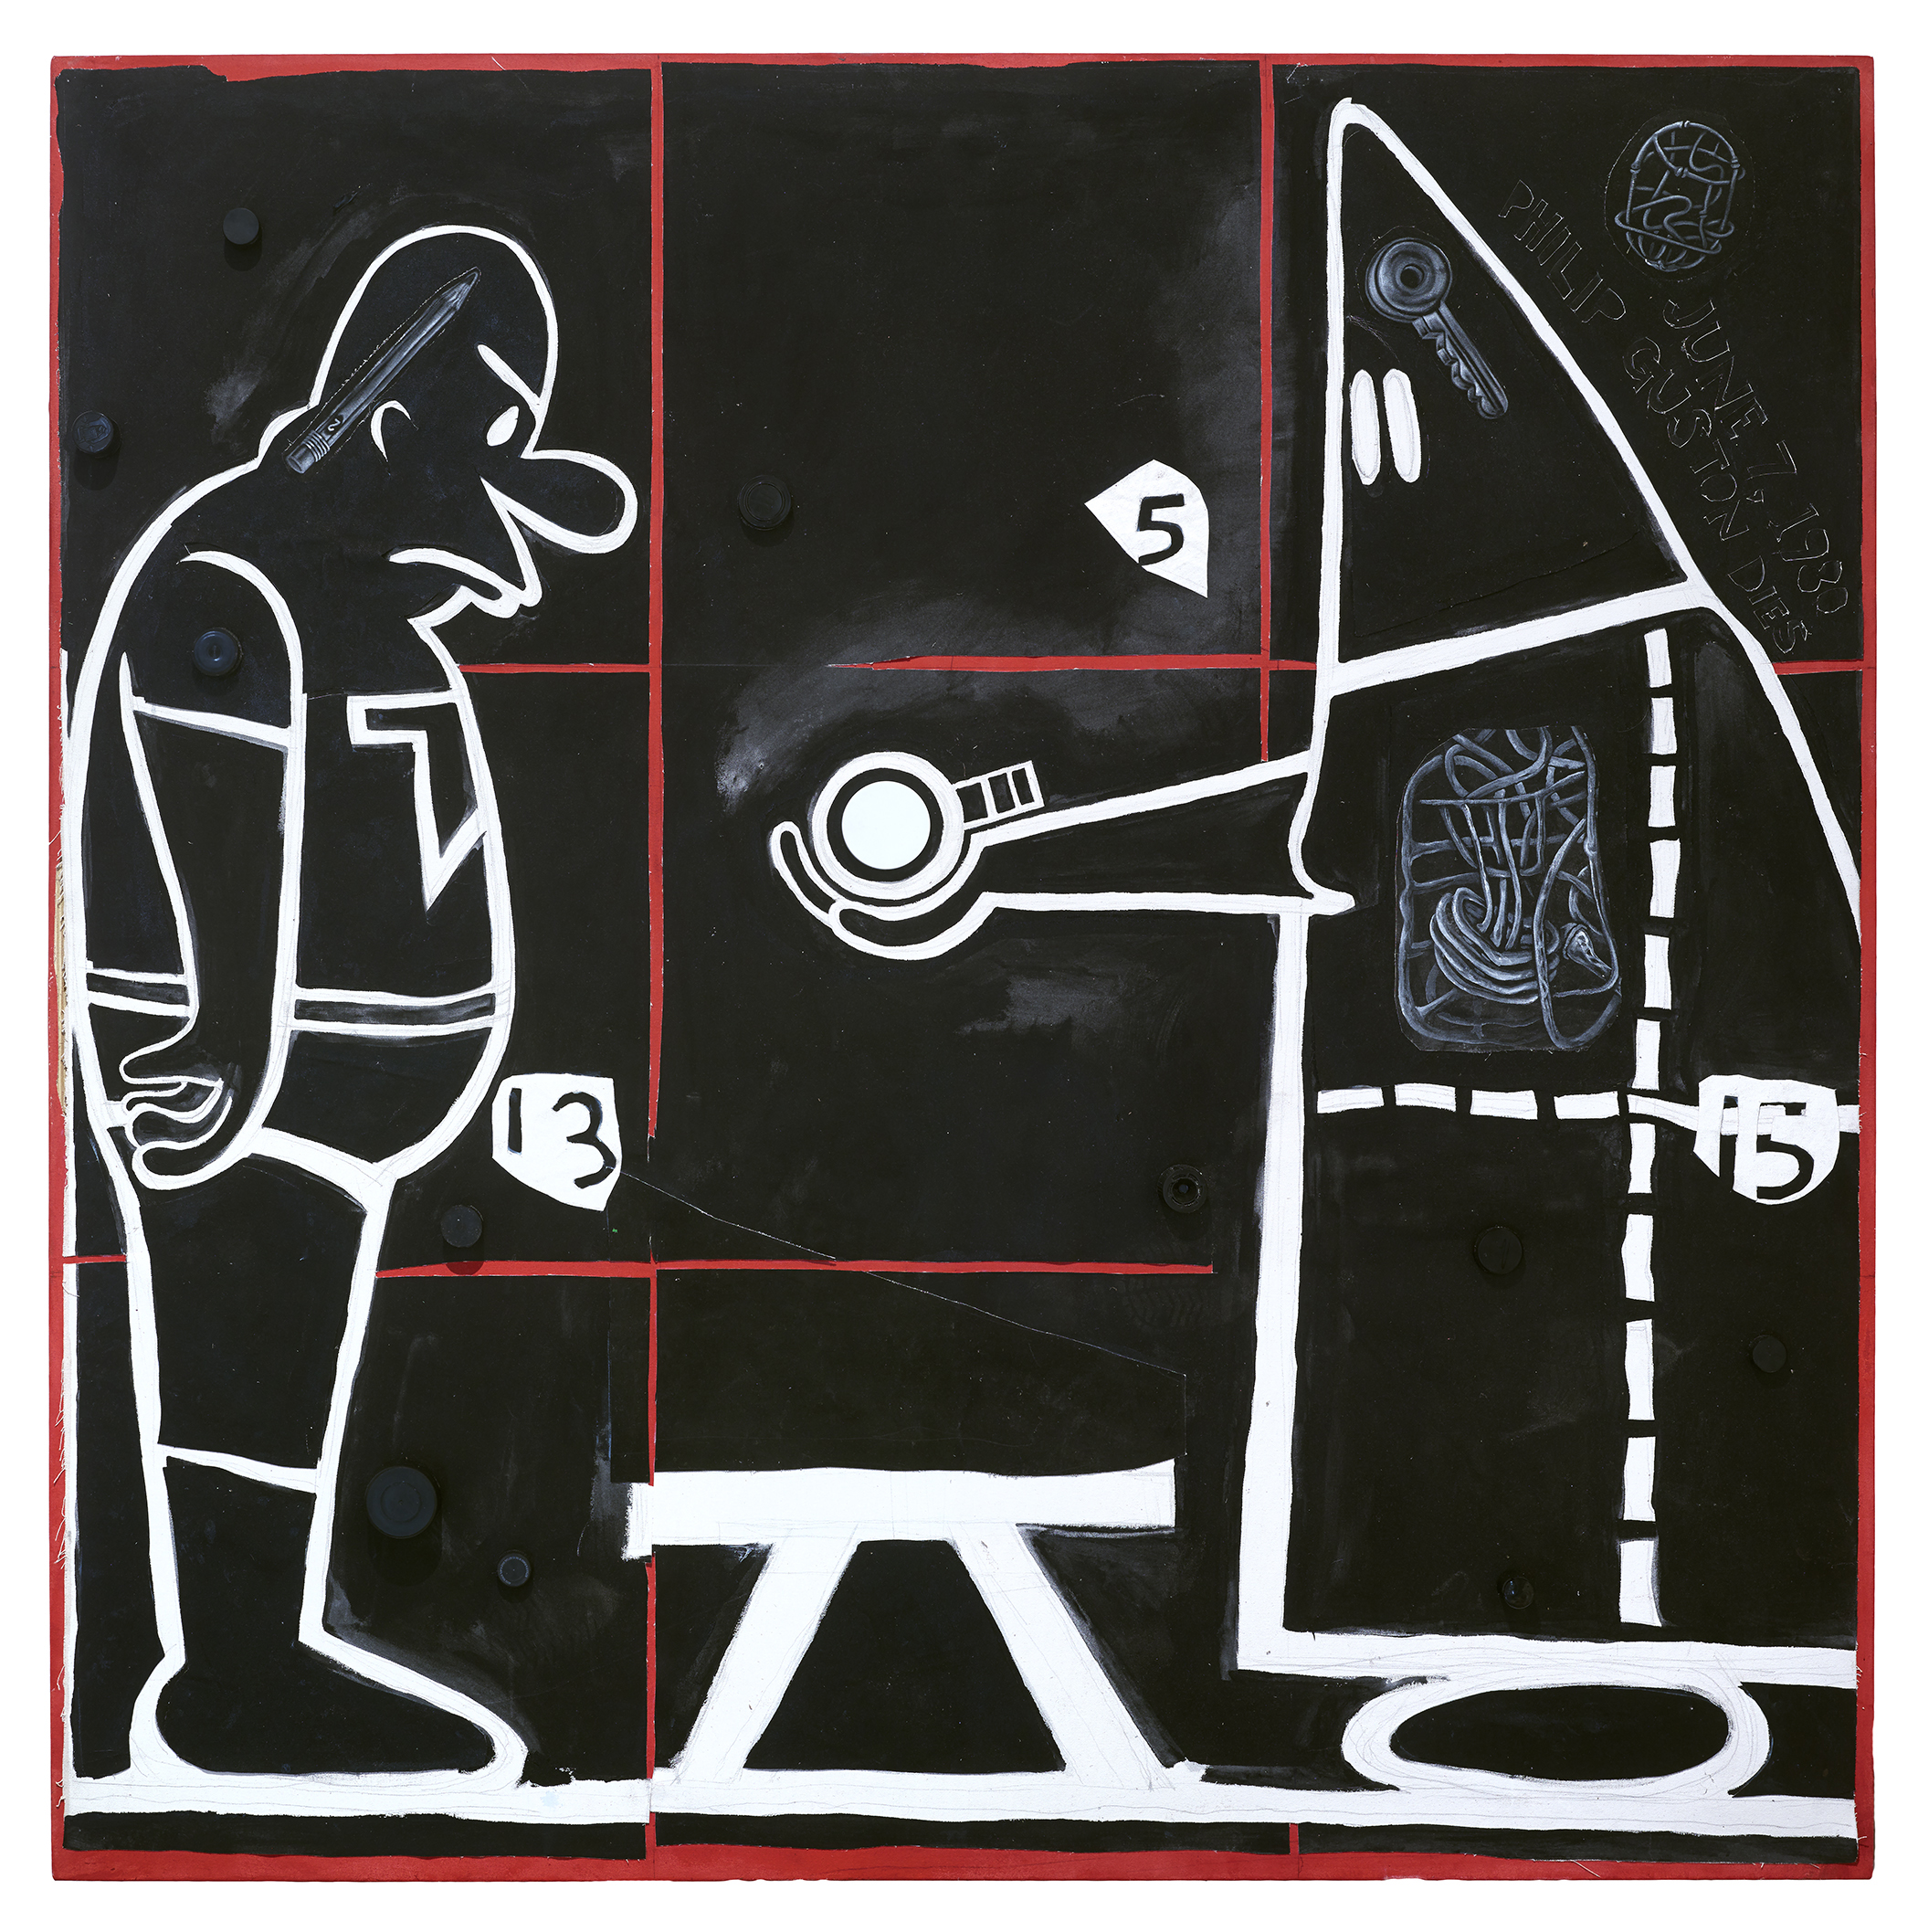 Trenton Doyle Hancock, Step and Screw #18-1, the Handoff, 2015, mixed media on canvas, 60 x 60 inches